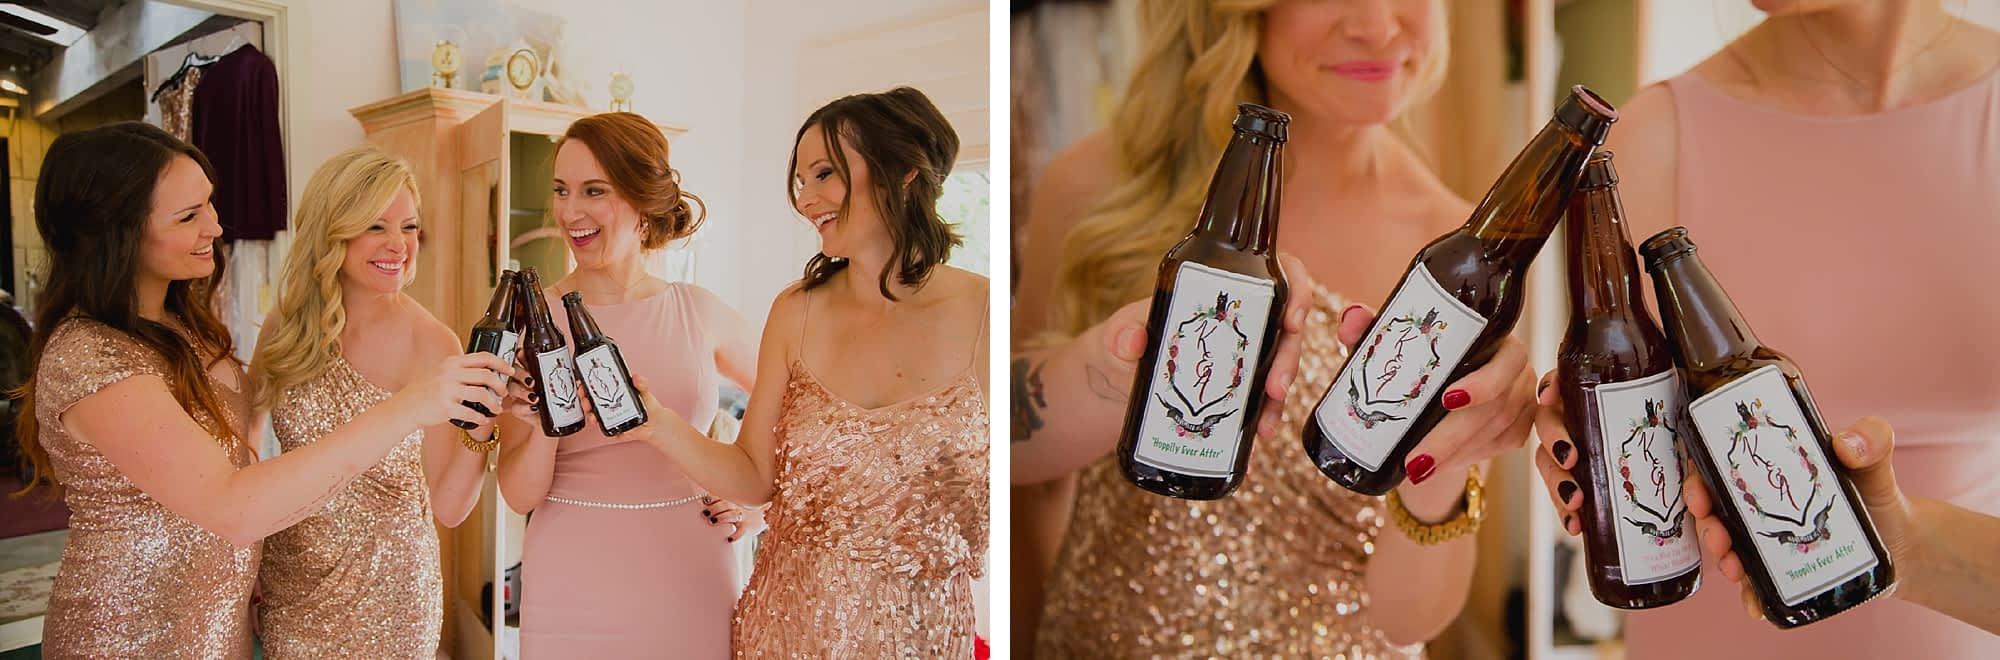 "The bride and bridesmaids cheers each other with their custom home brews, complete with custom ""K&A"" labels."